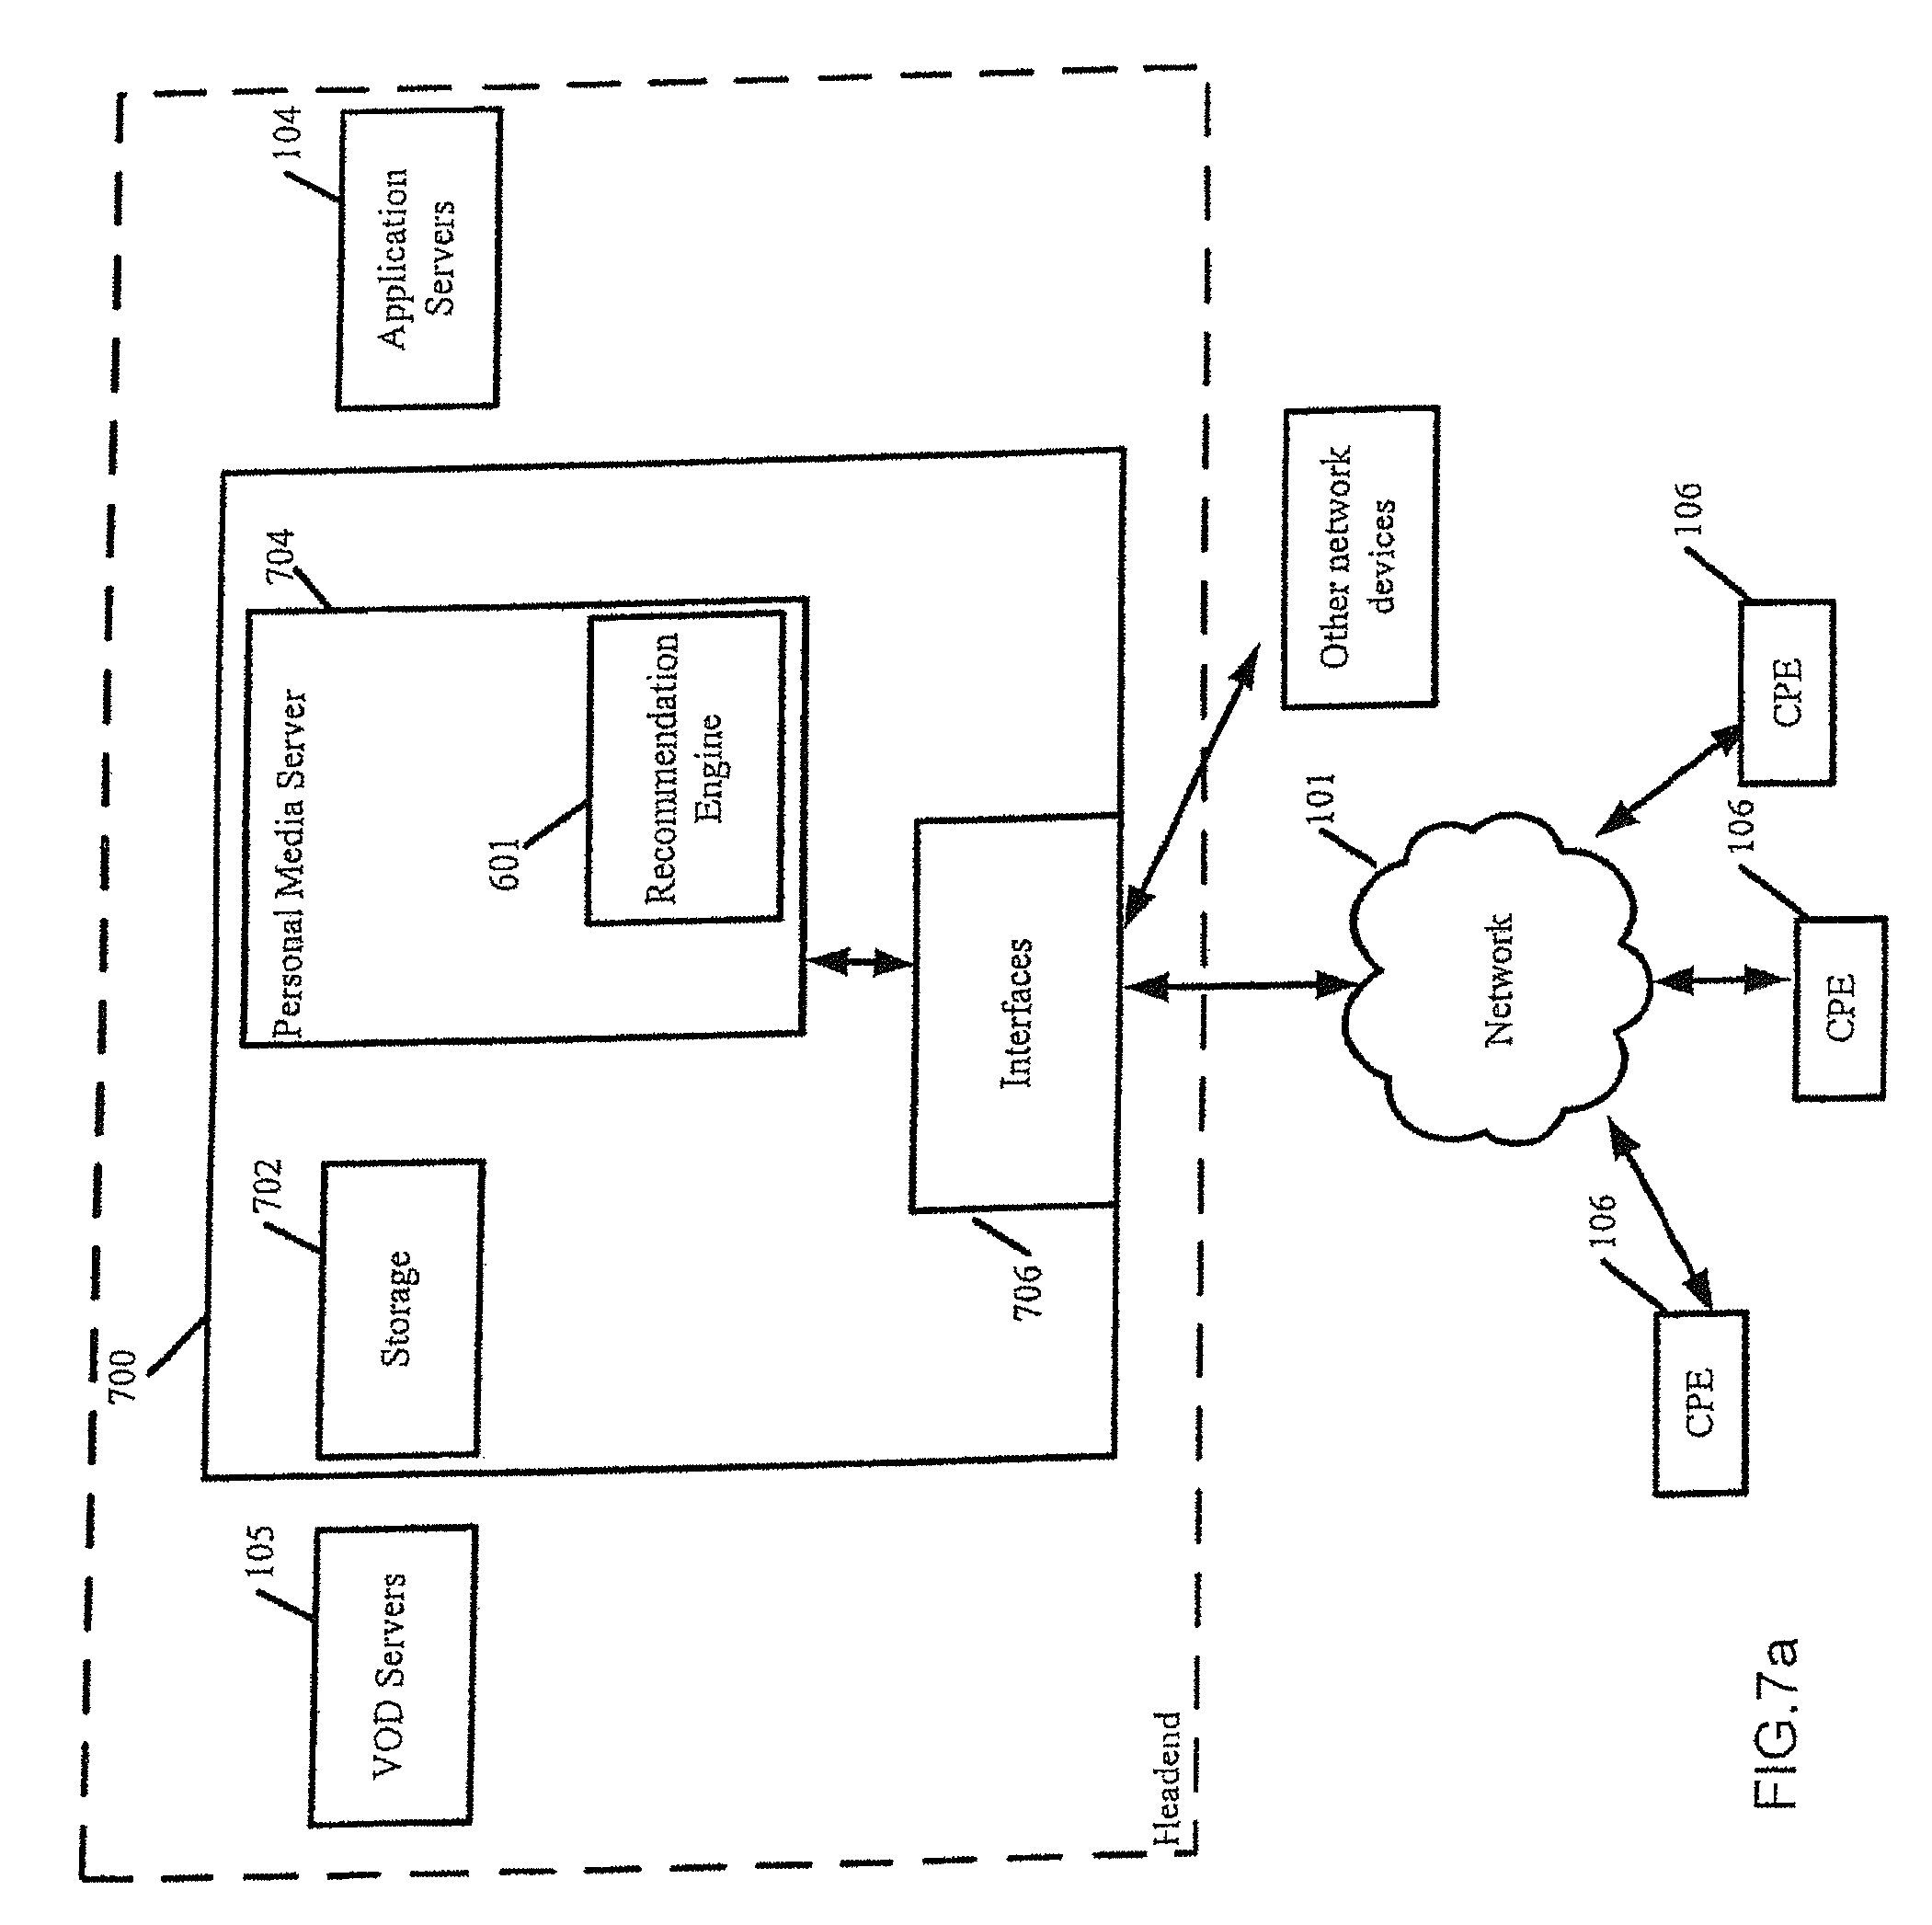 Patent Us 9380329 B2 Diagram Likewise Cable Modem Router Also At T Wireless U Verse 0 Petitions